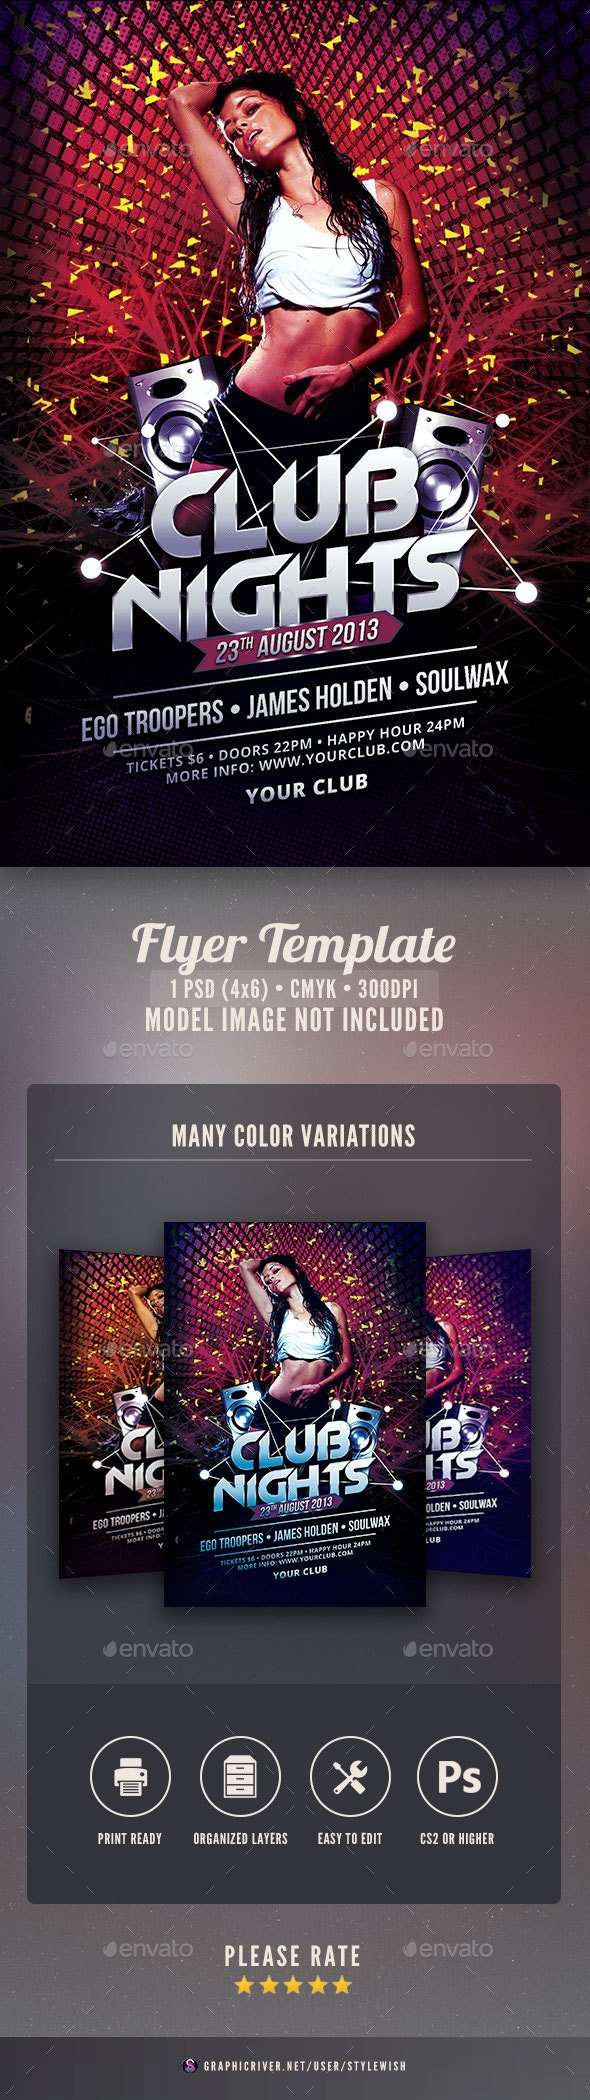 Club Nights Flyer - Clubs & Parties Events